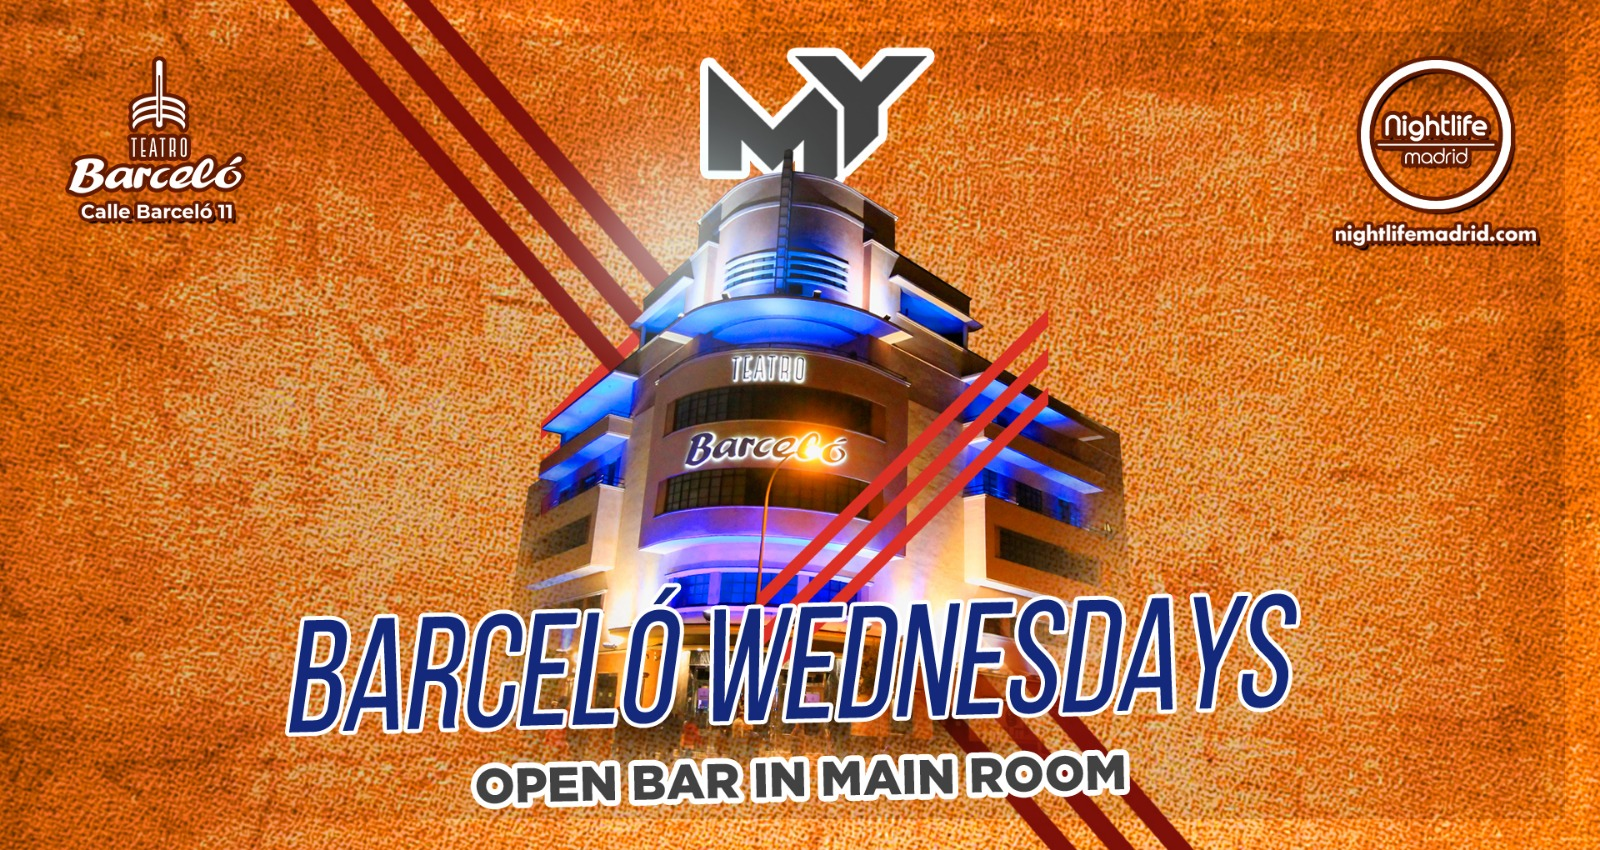 Barceló Wednesdays - Virtual Nightlife Madrid